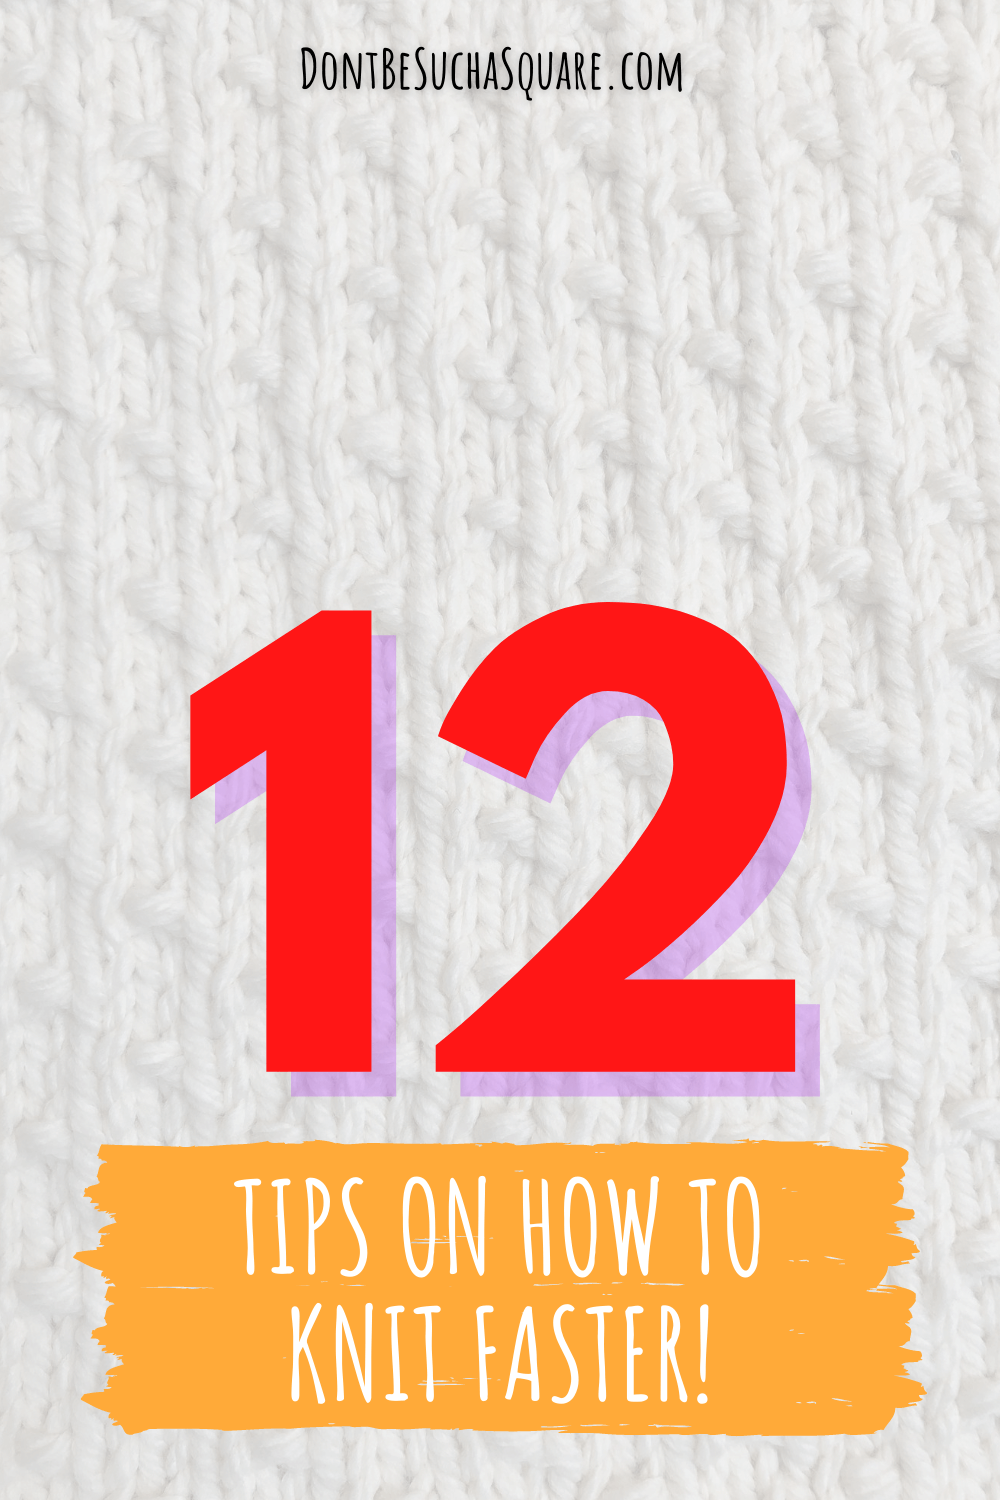 12 tips on how to knit faster!